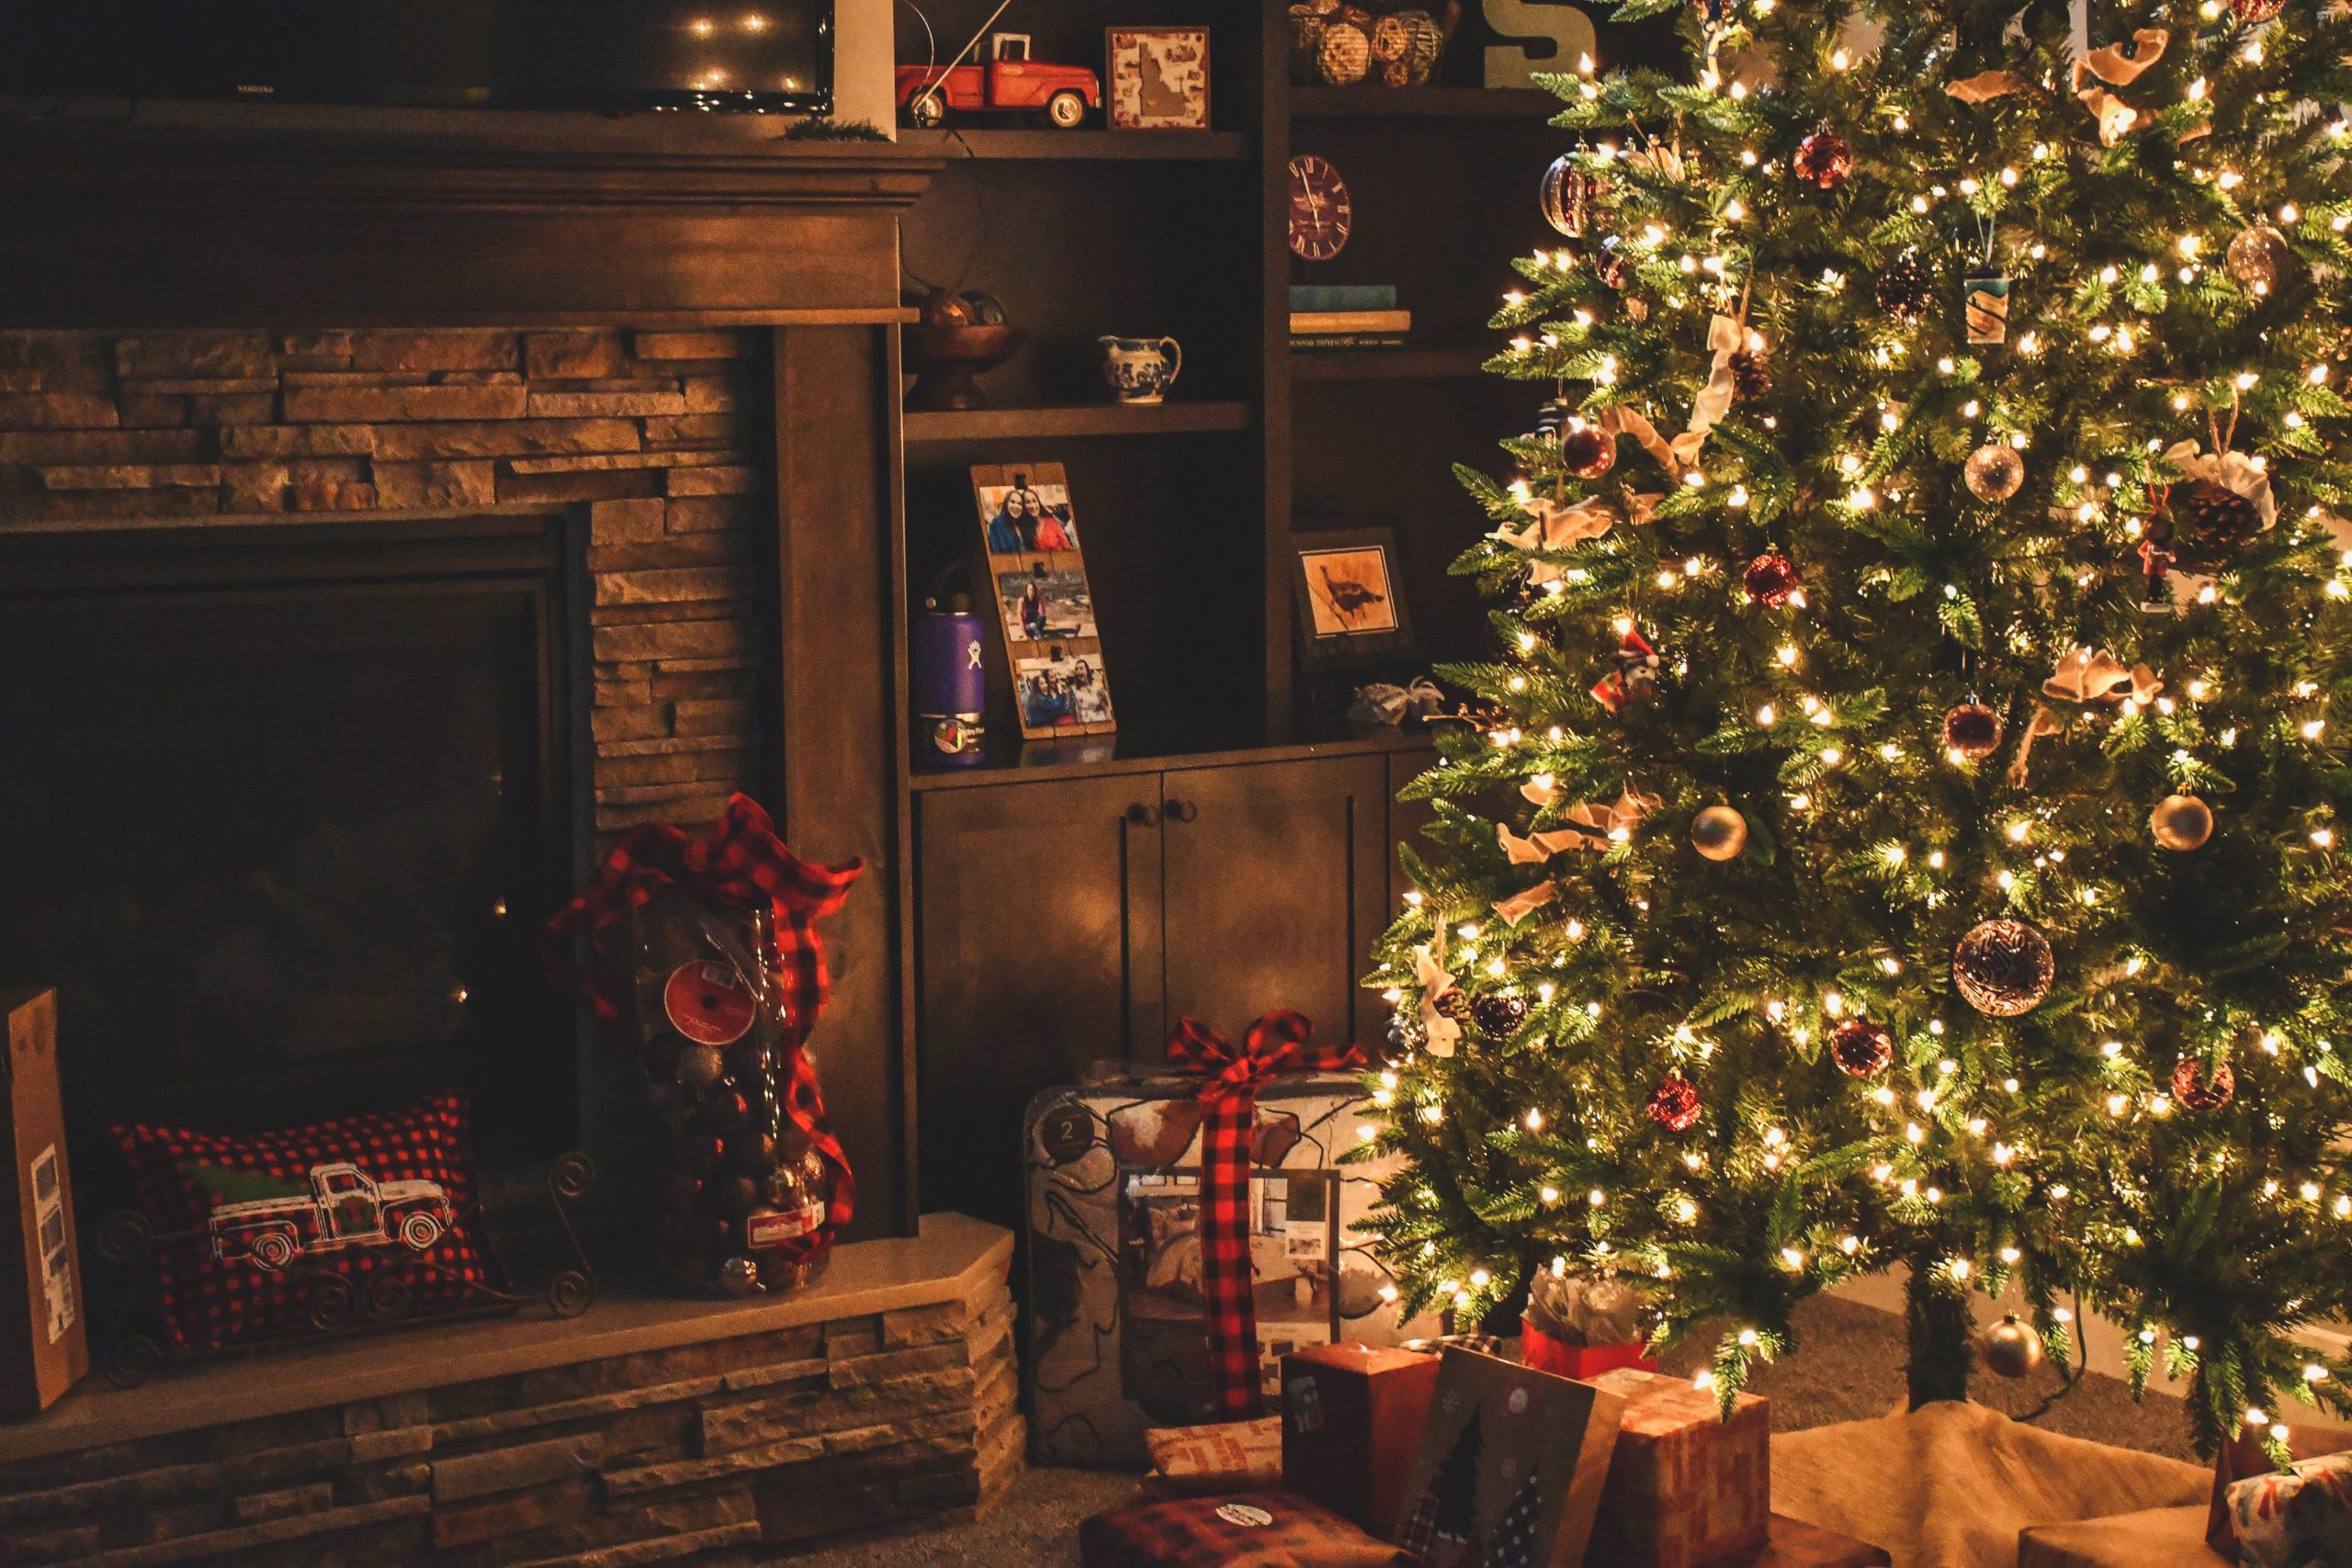 7 ways Christmas is different when you're a parent